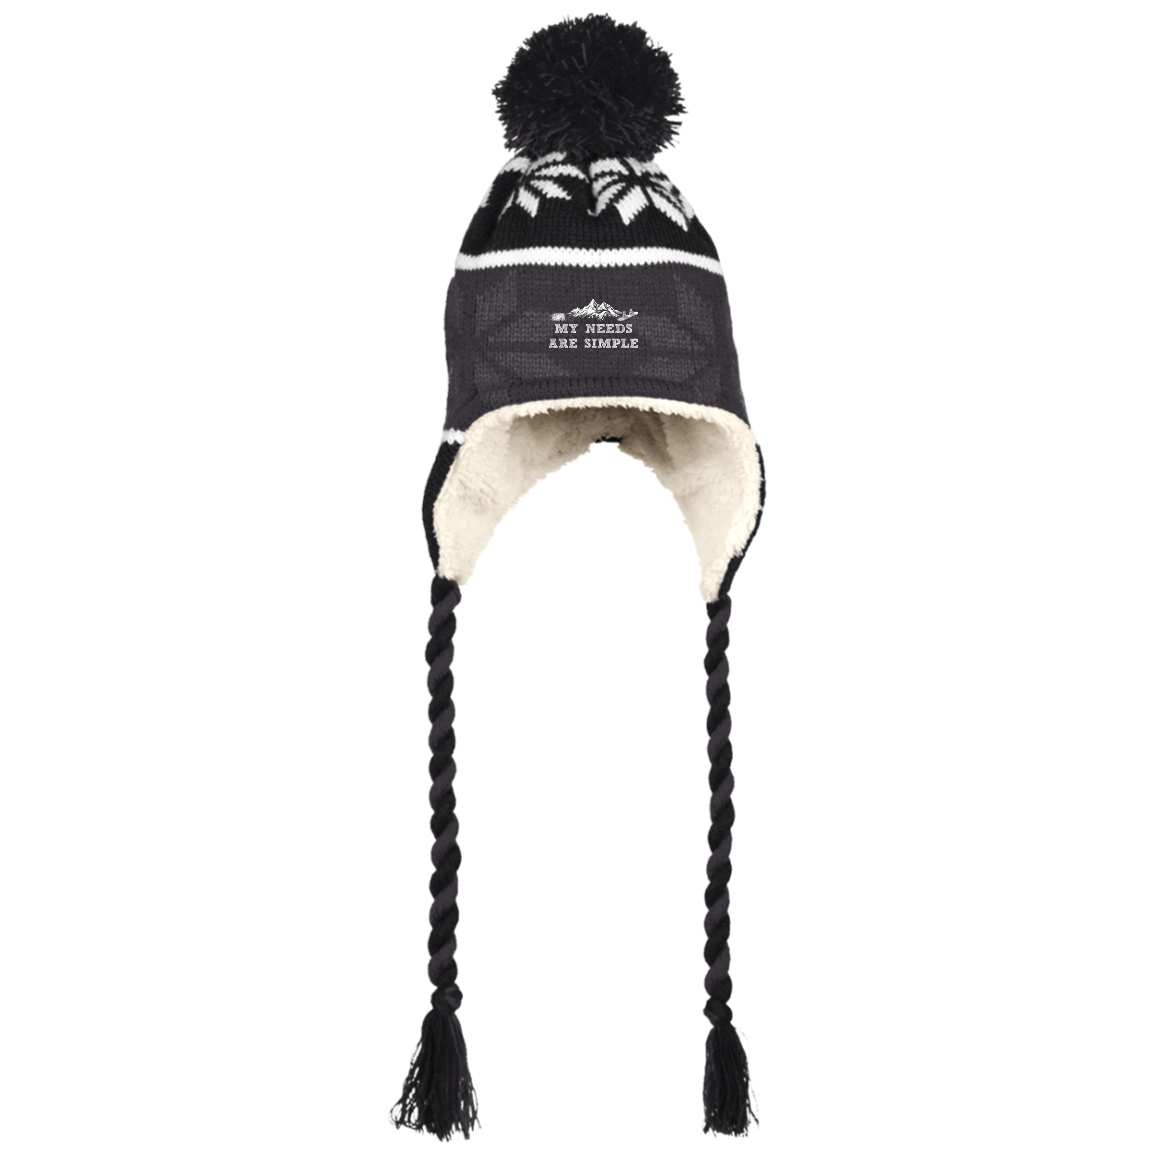 My Needs Are Simple Snowboard Peruvian Hat - Powderaddicts